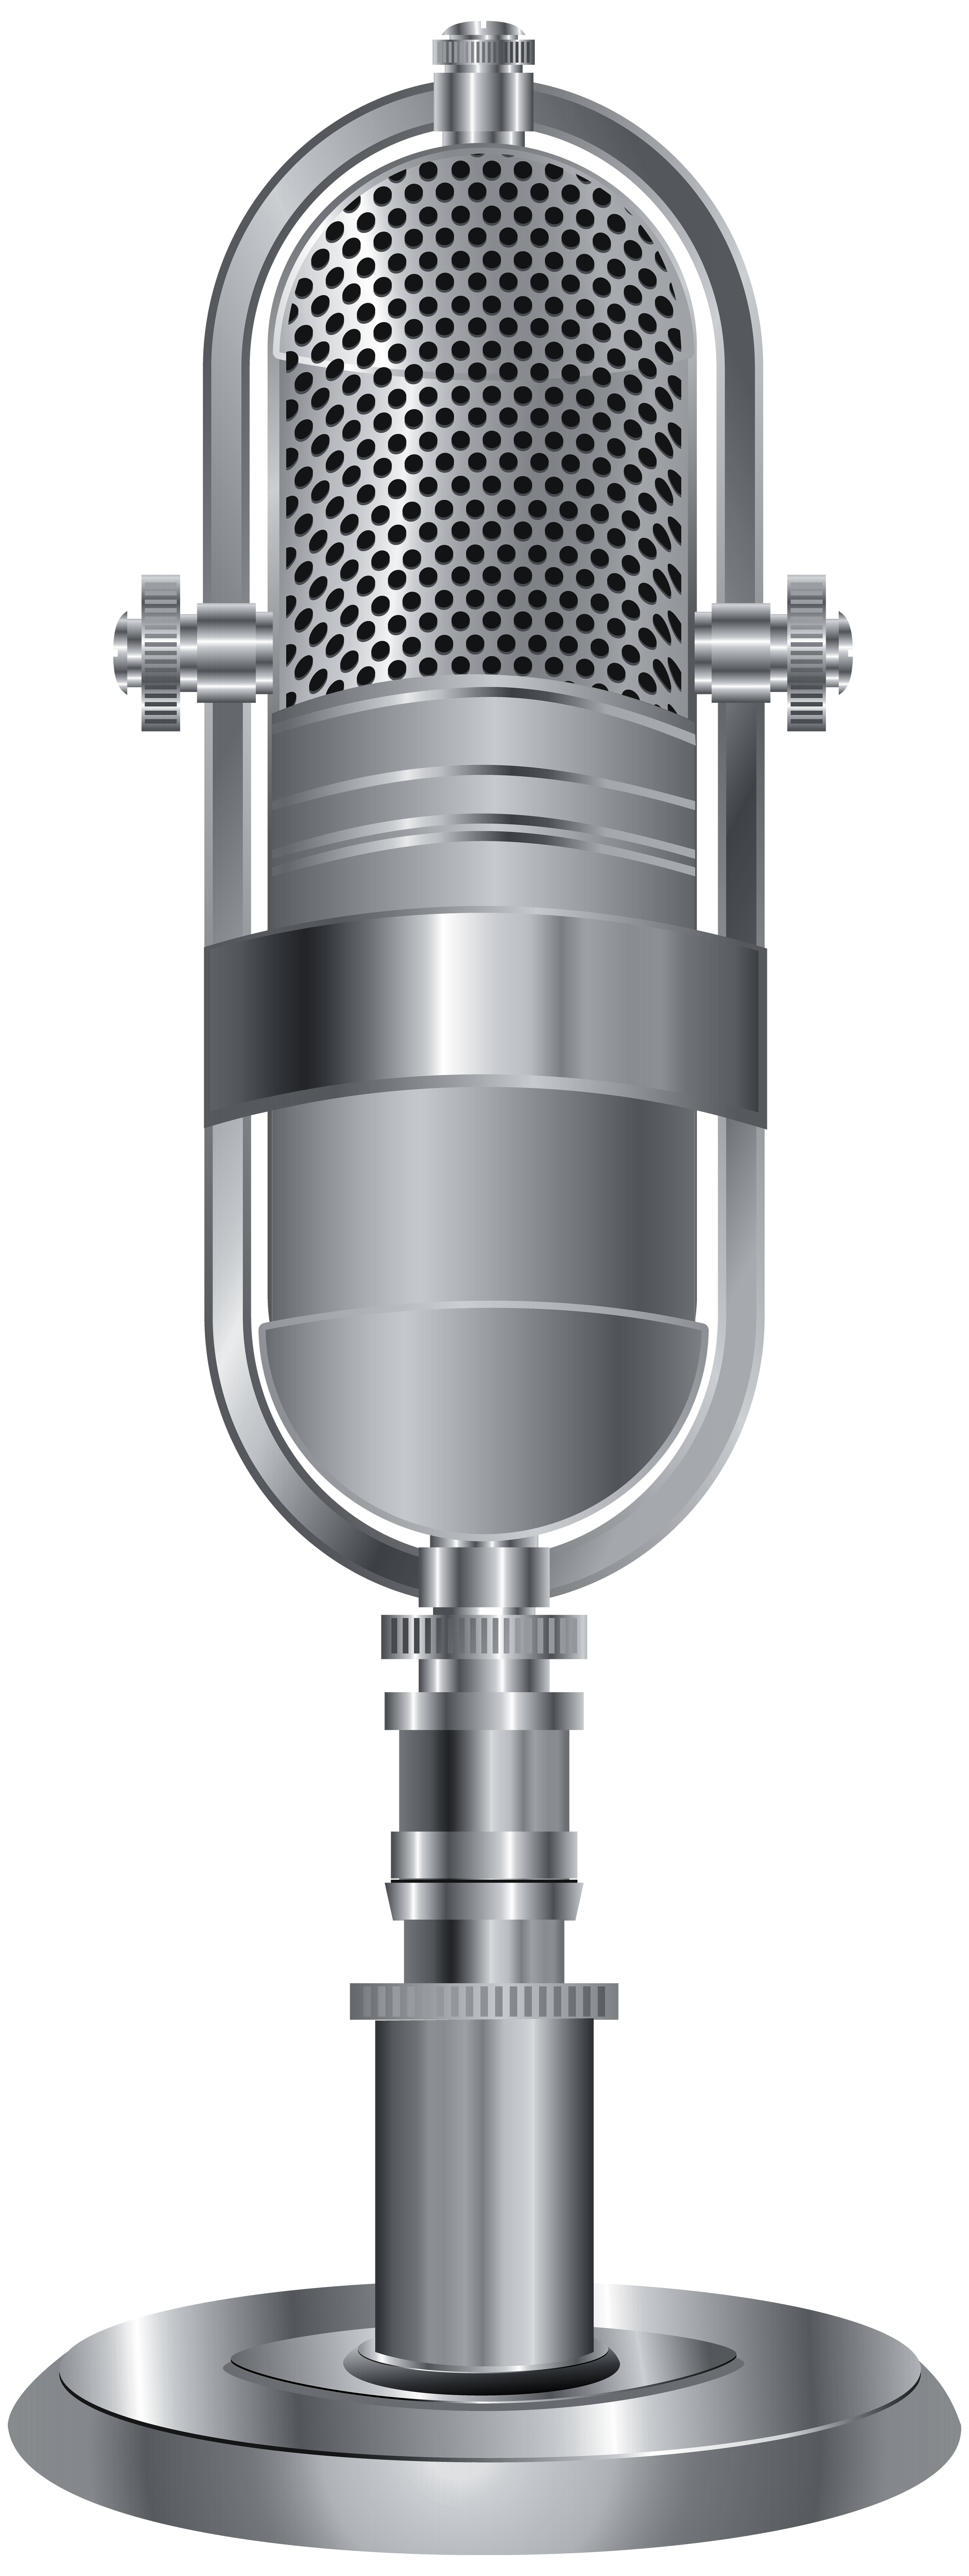 Microphone png silver. Studio clip art image